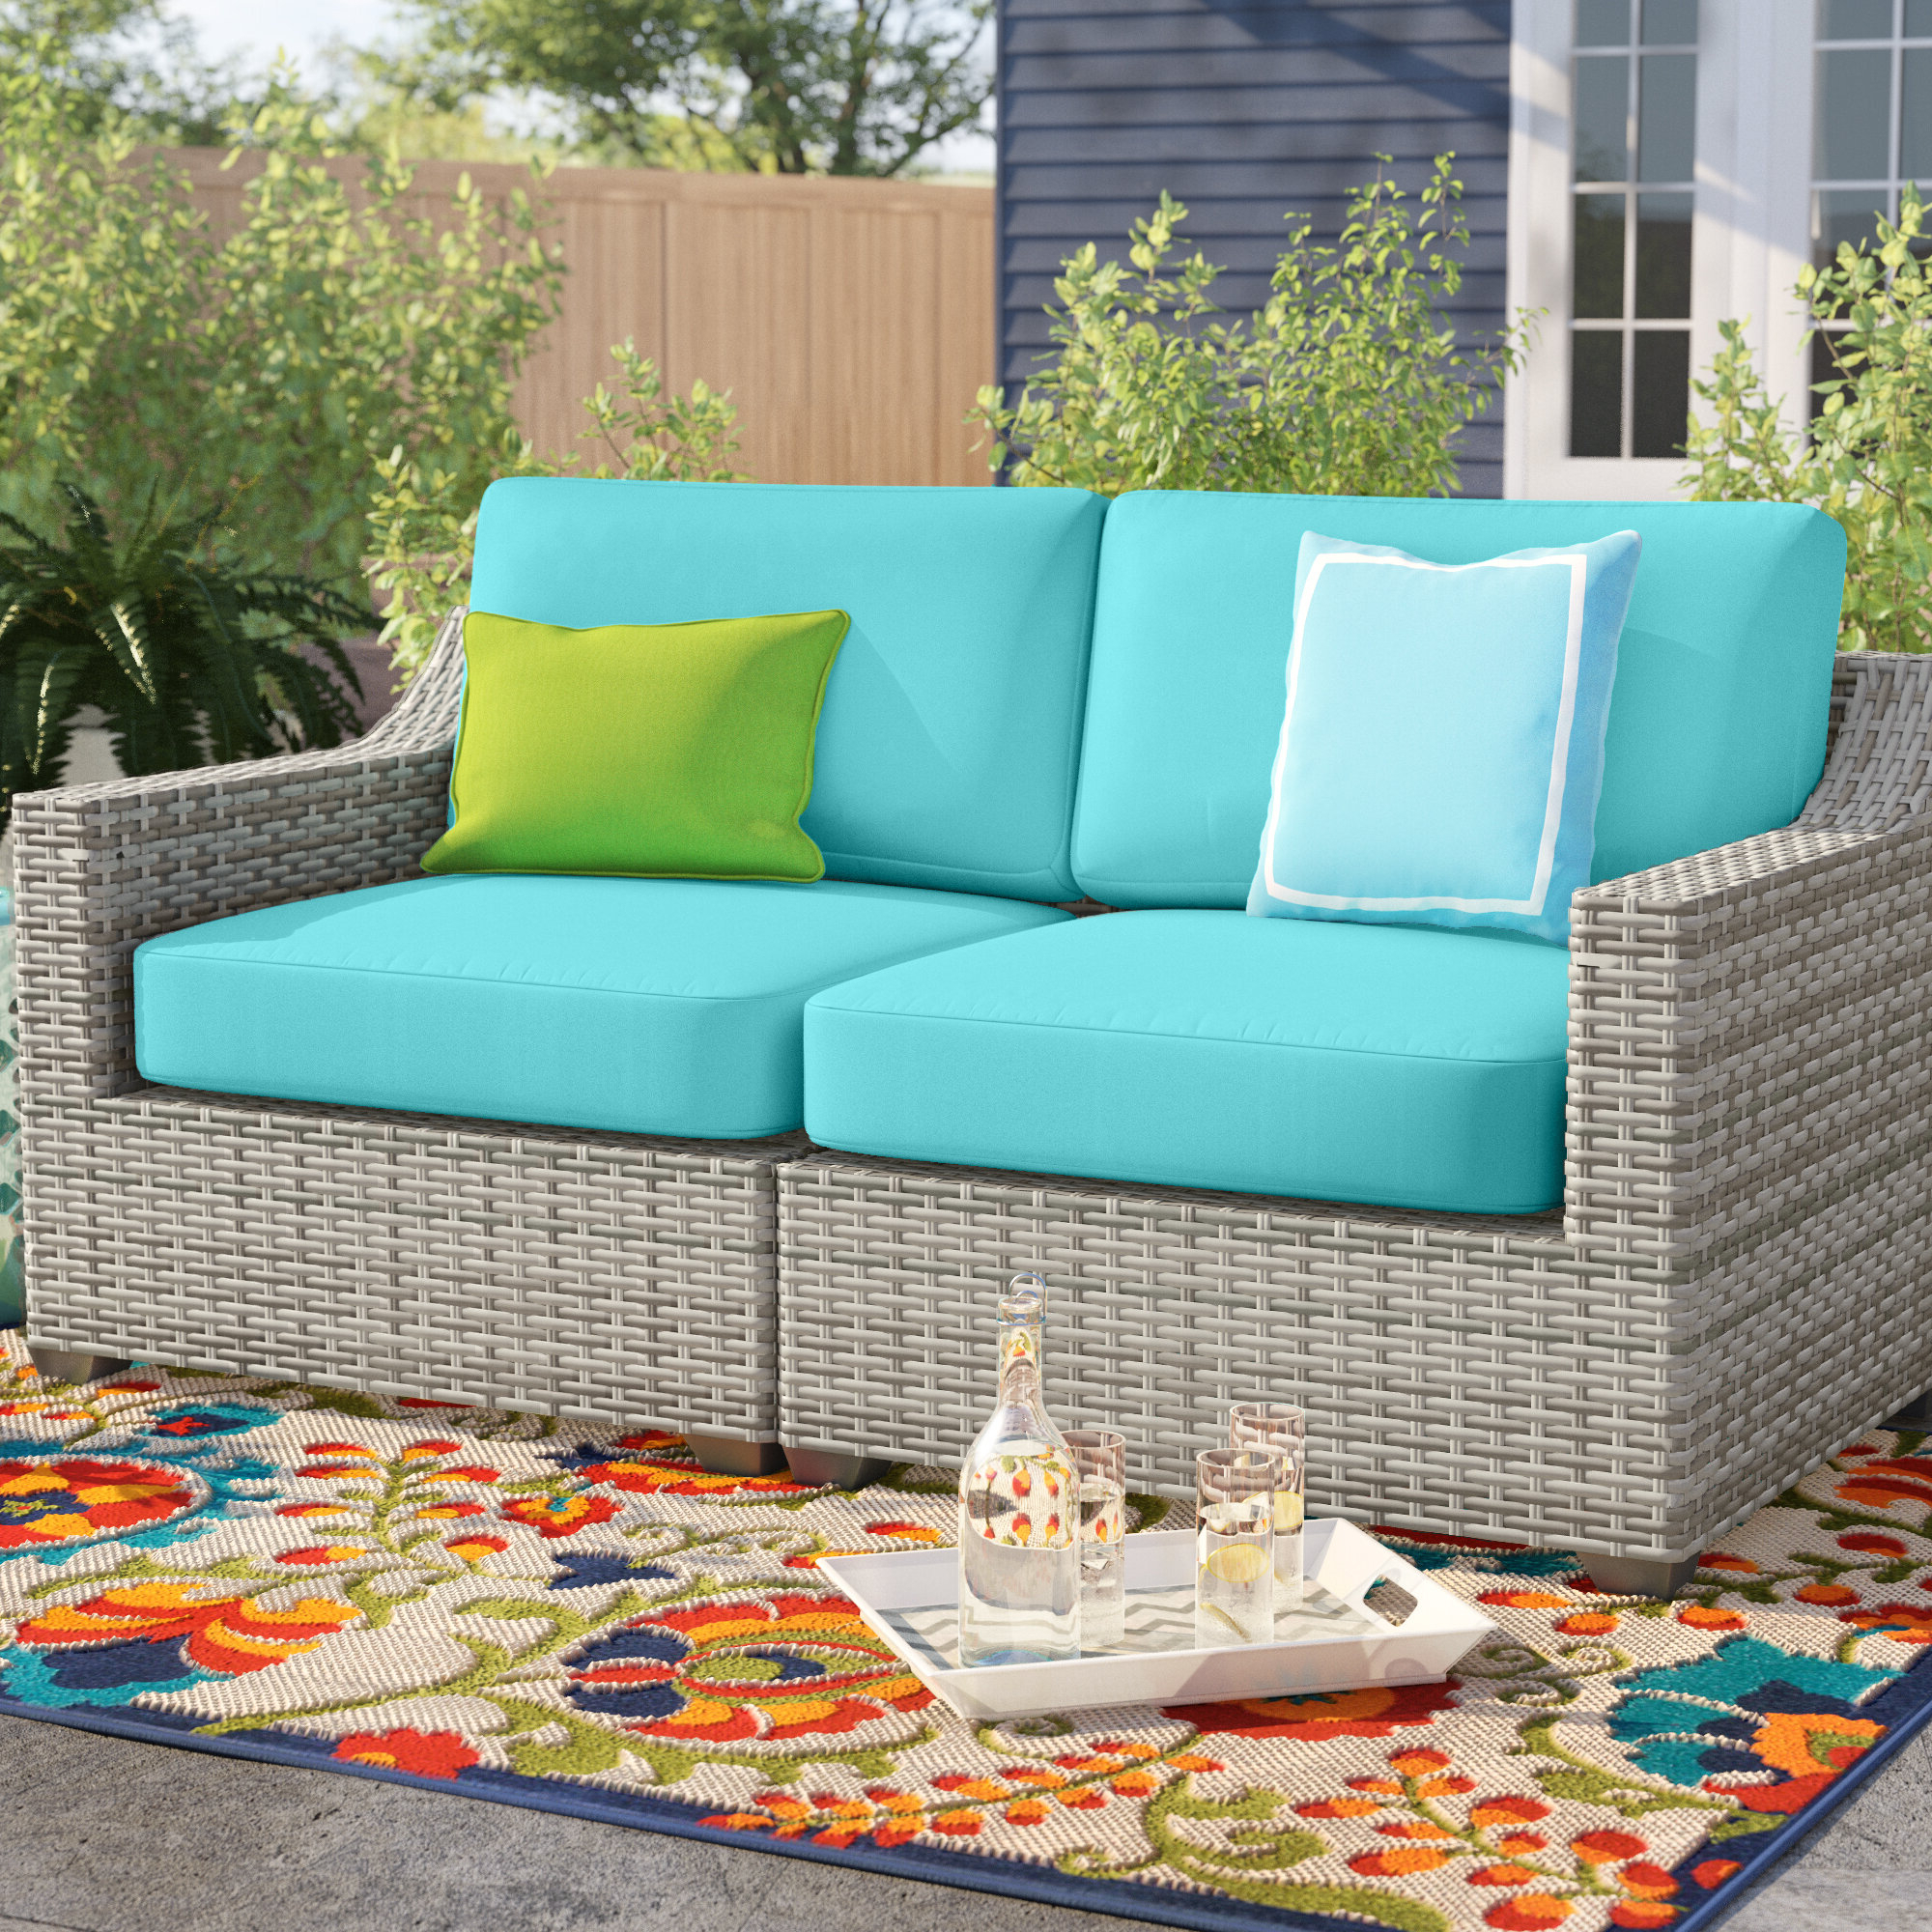 Mosca Patio Loveseats With Cushions In Popular Falmouth Loveseat With Cushions (View 10 of 20)